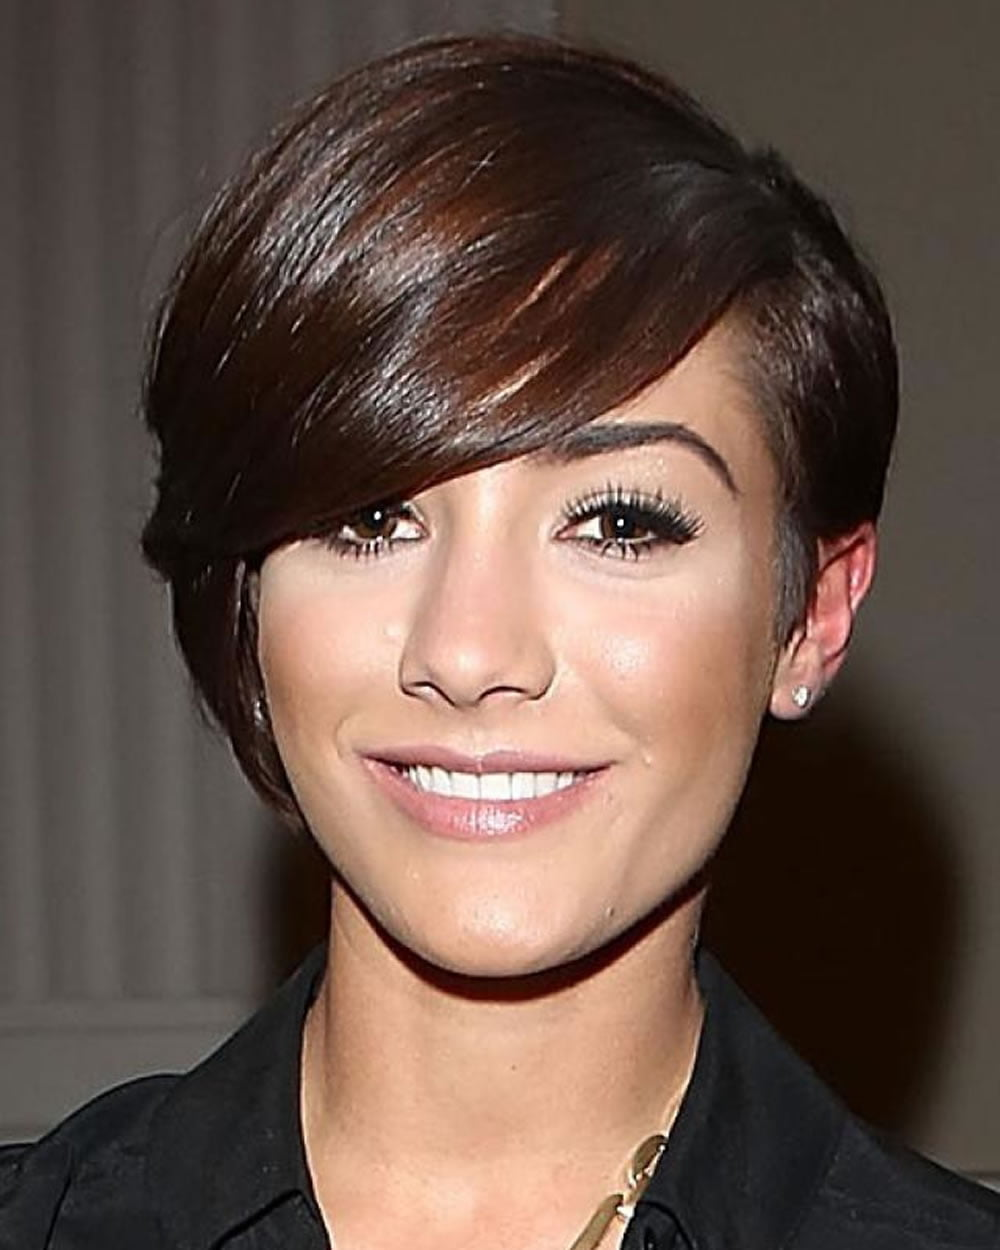 Pixie Or Short Hairstyle Images 2020 & Short Hair Cut